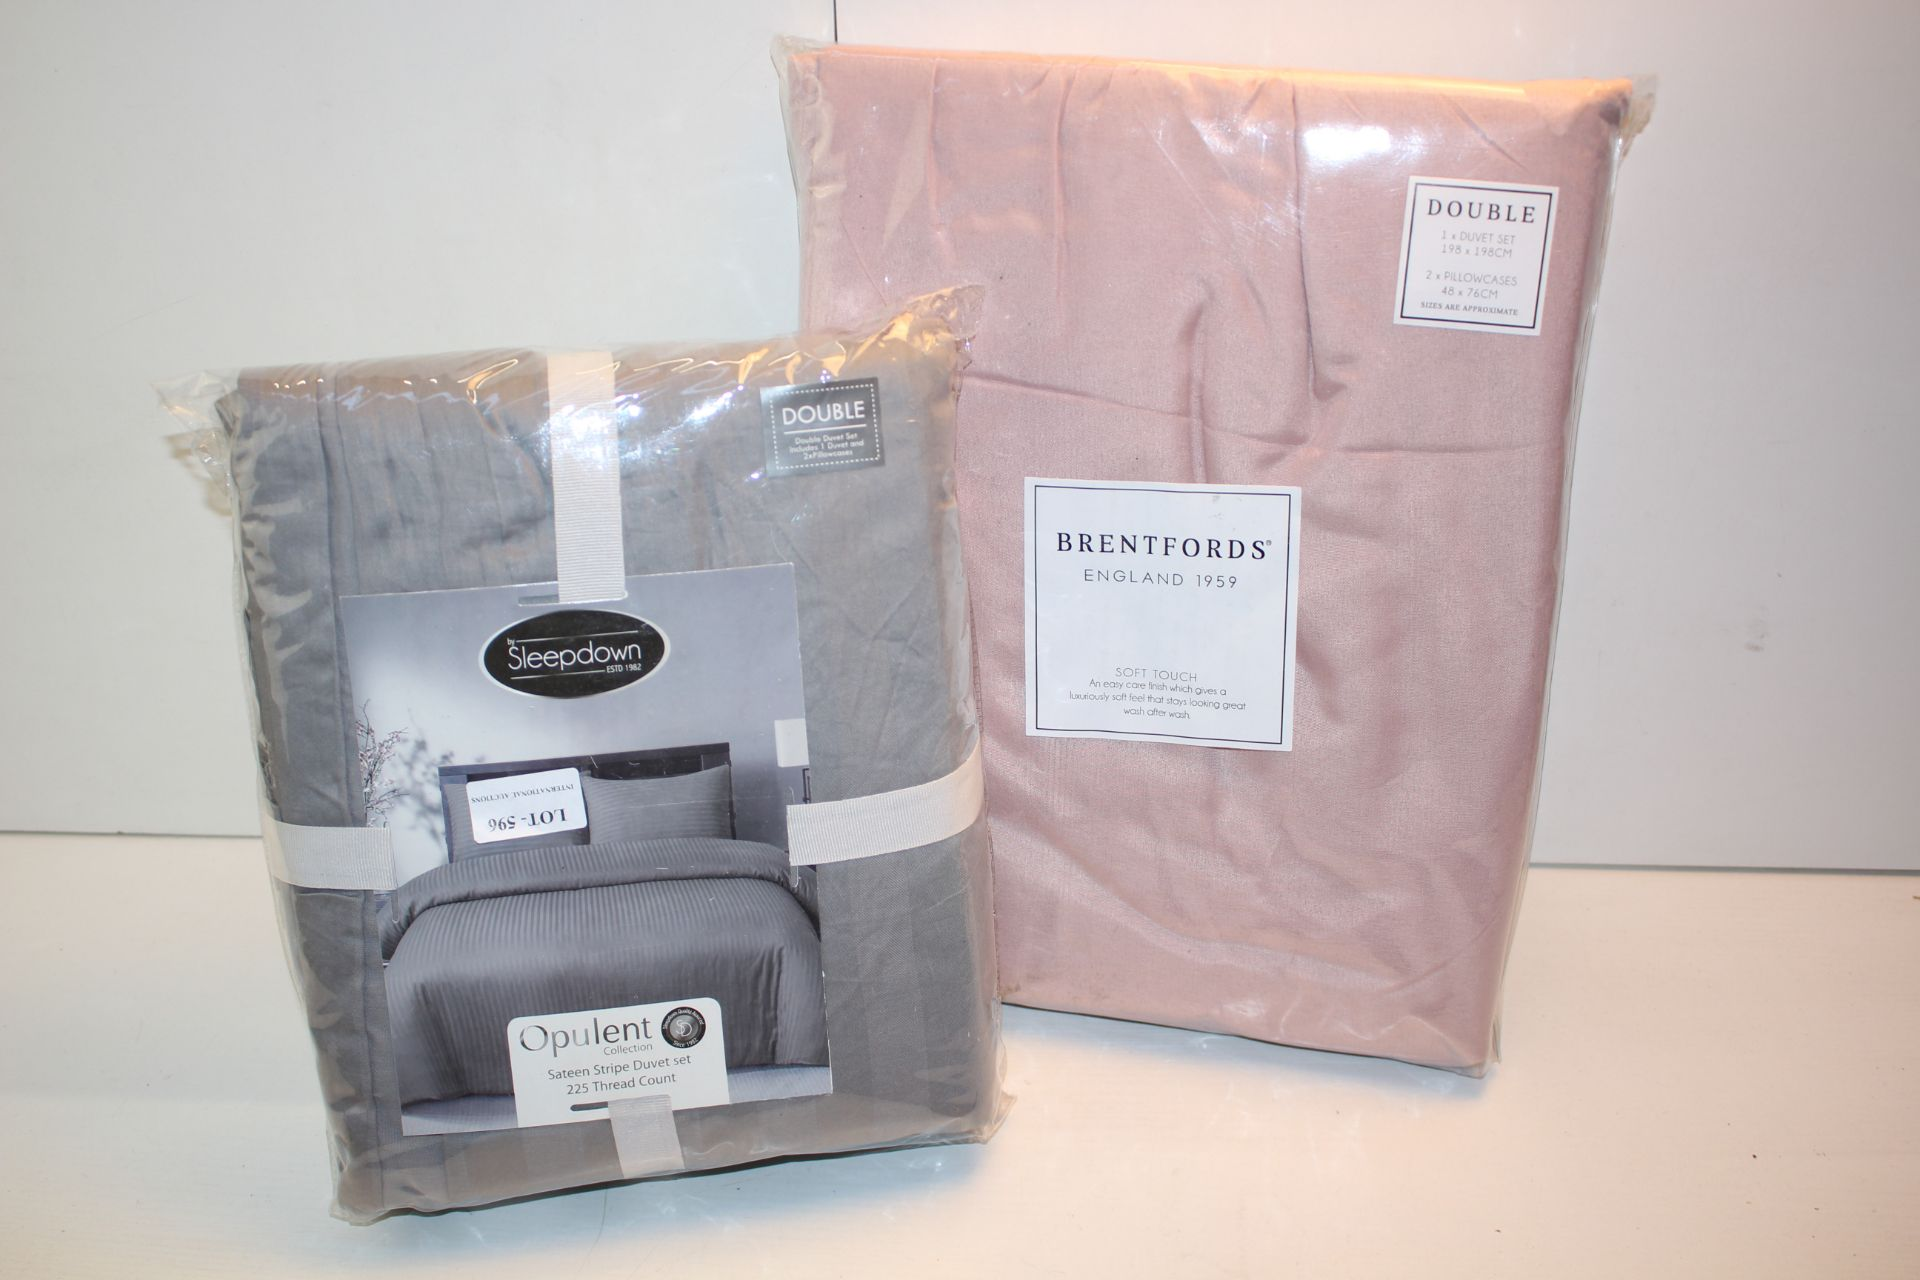 X2 BEDDING SETS TO INCLUDE SLEEPDOWN DOUBLE AND BRENTFORDS DOUBLE SET Condition ReportAppraisal